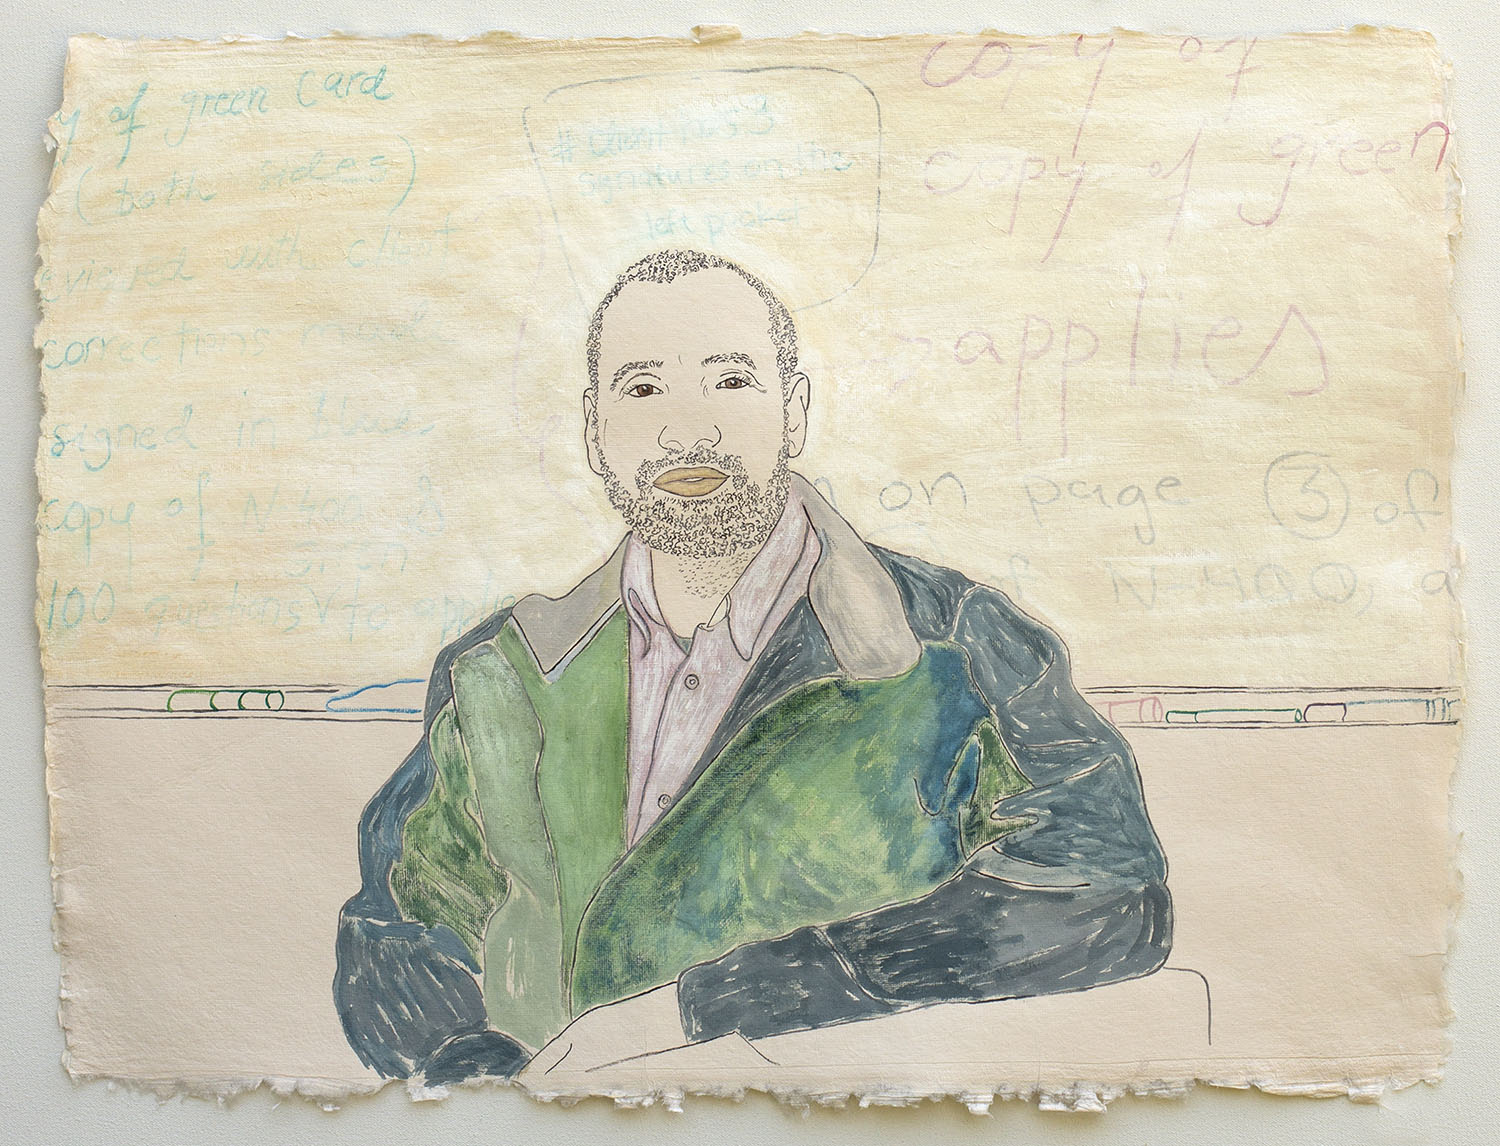 """Man in Front of a Whiteboard, Applying for U.S. Citizenship  2019, ink, watercolor, gouache on handmade paper made in India from recycled clothing, 19"""" x 25"""""""